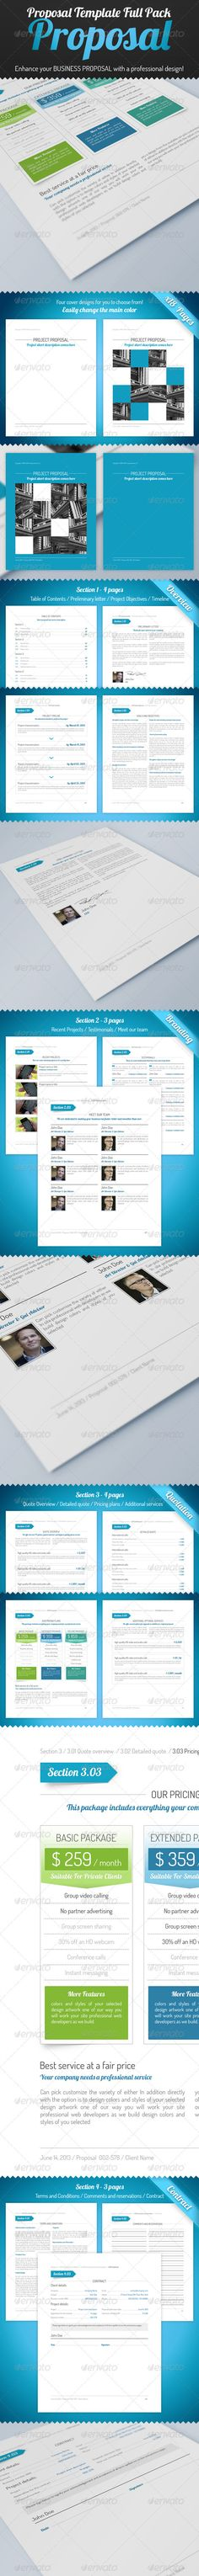 Clean Proposal \ Brief Template Creative, Briefs and Brochures - proposal layouts